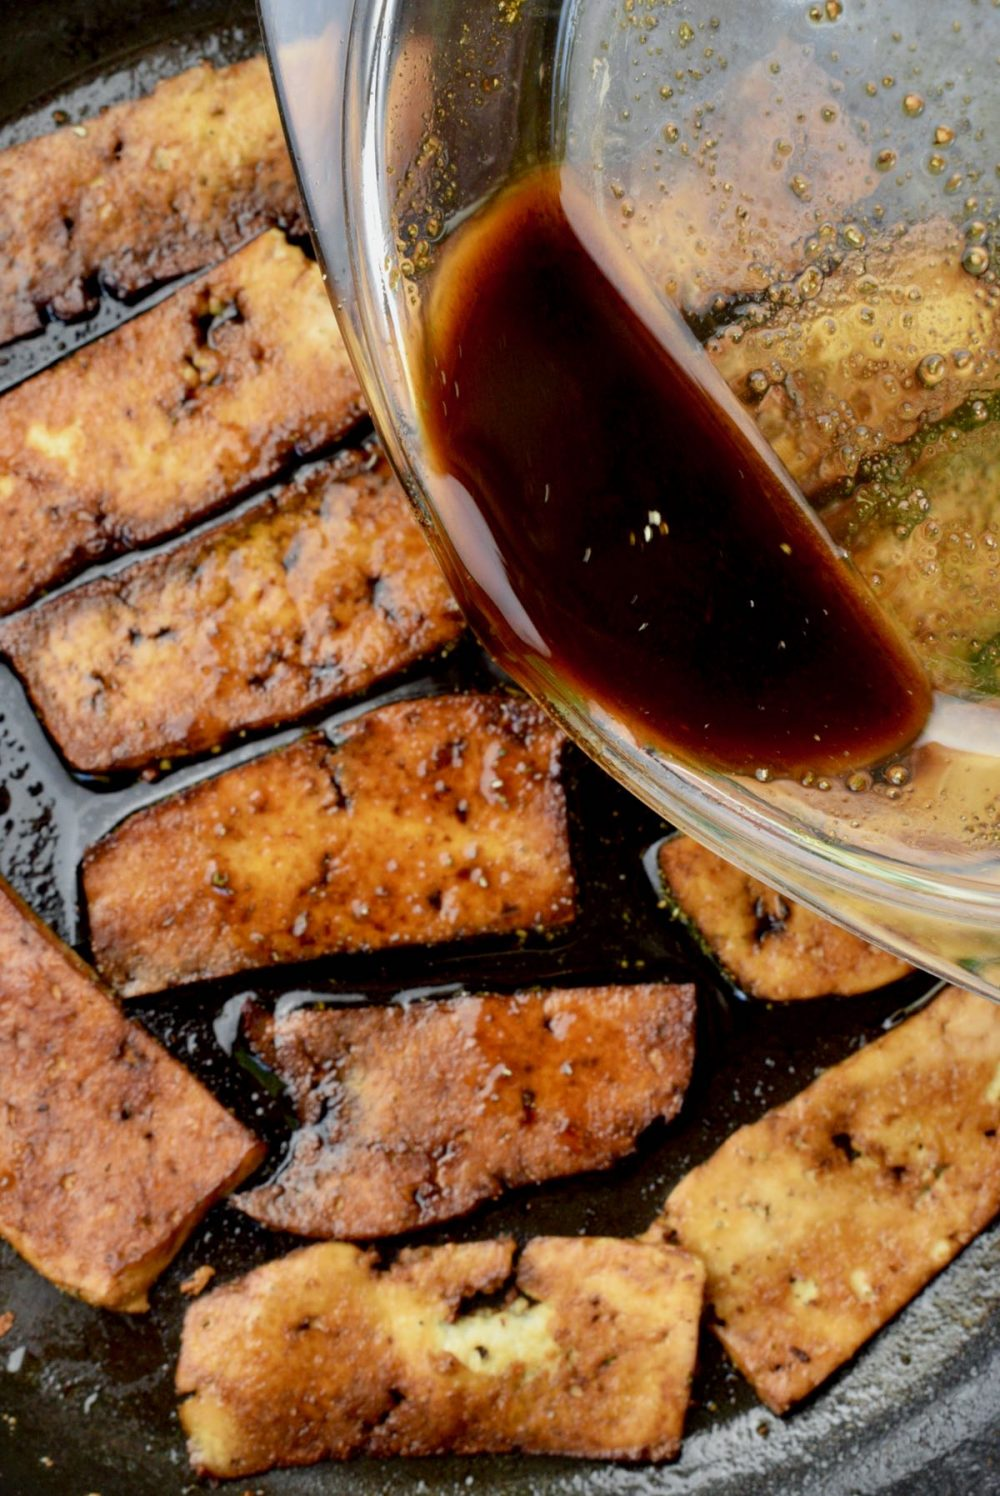 A dark brown marinade is poured over slices of fried tofu in the frying pan.